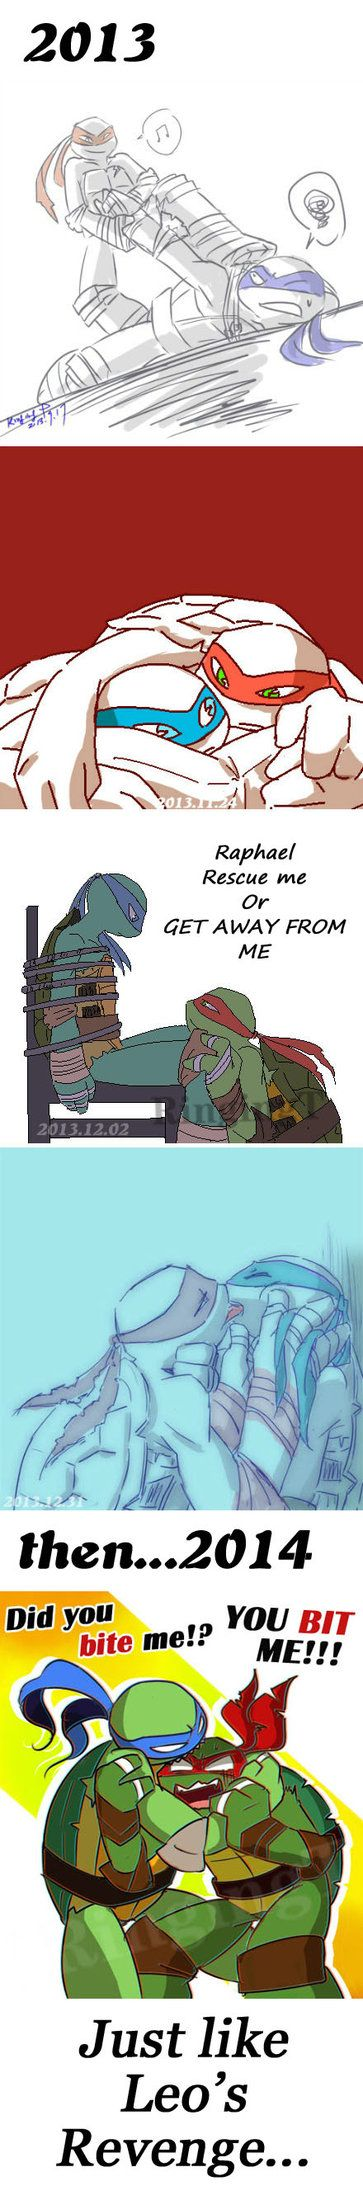 Best images about Tmnt on Pinterest Leave me alone Pizza and Chibi